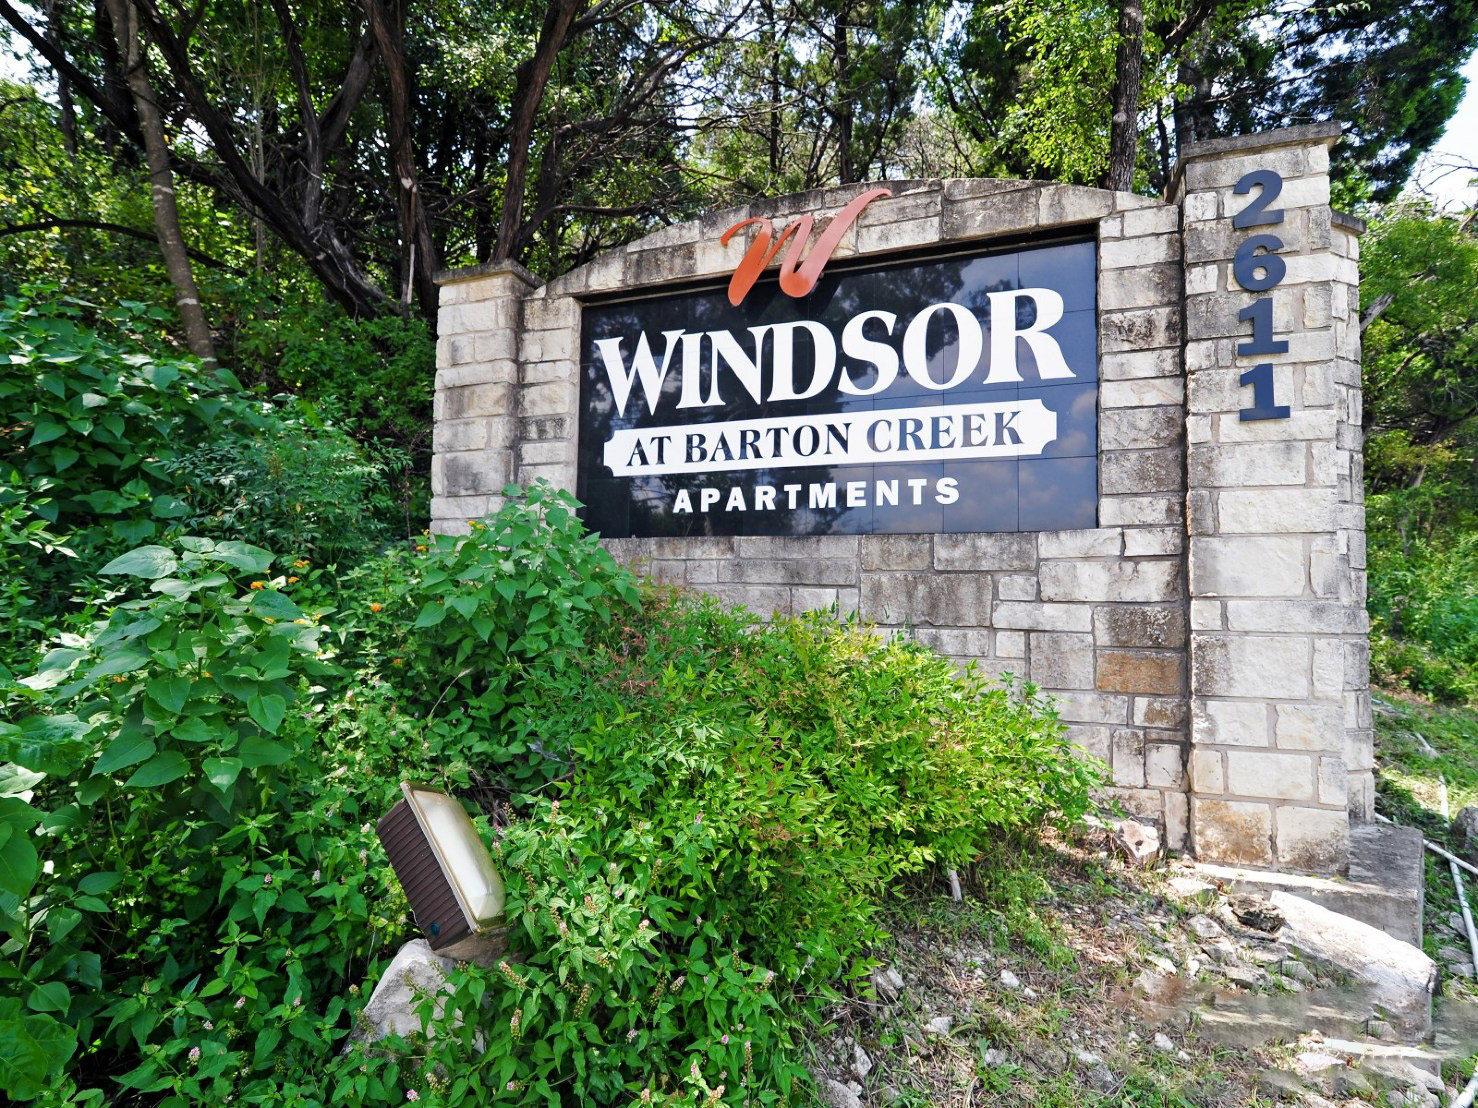 Property Sign at Windsor at Barton Creek Apartments in Austin, TX